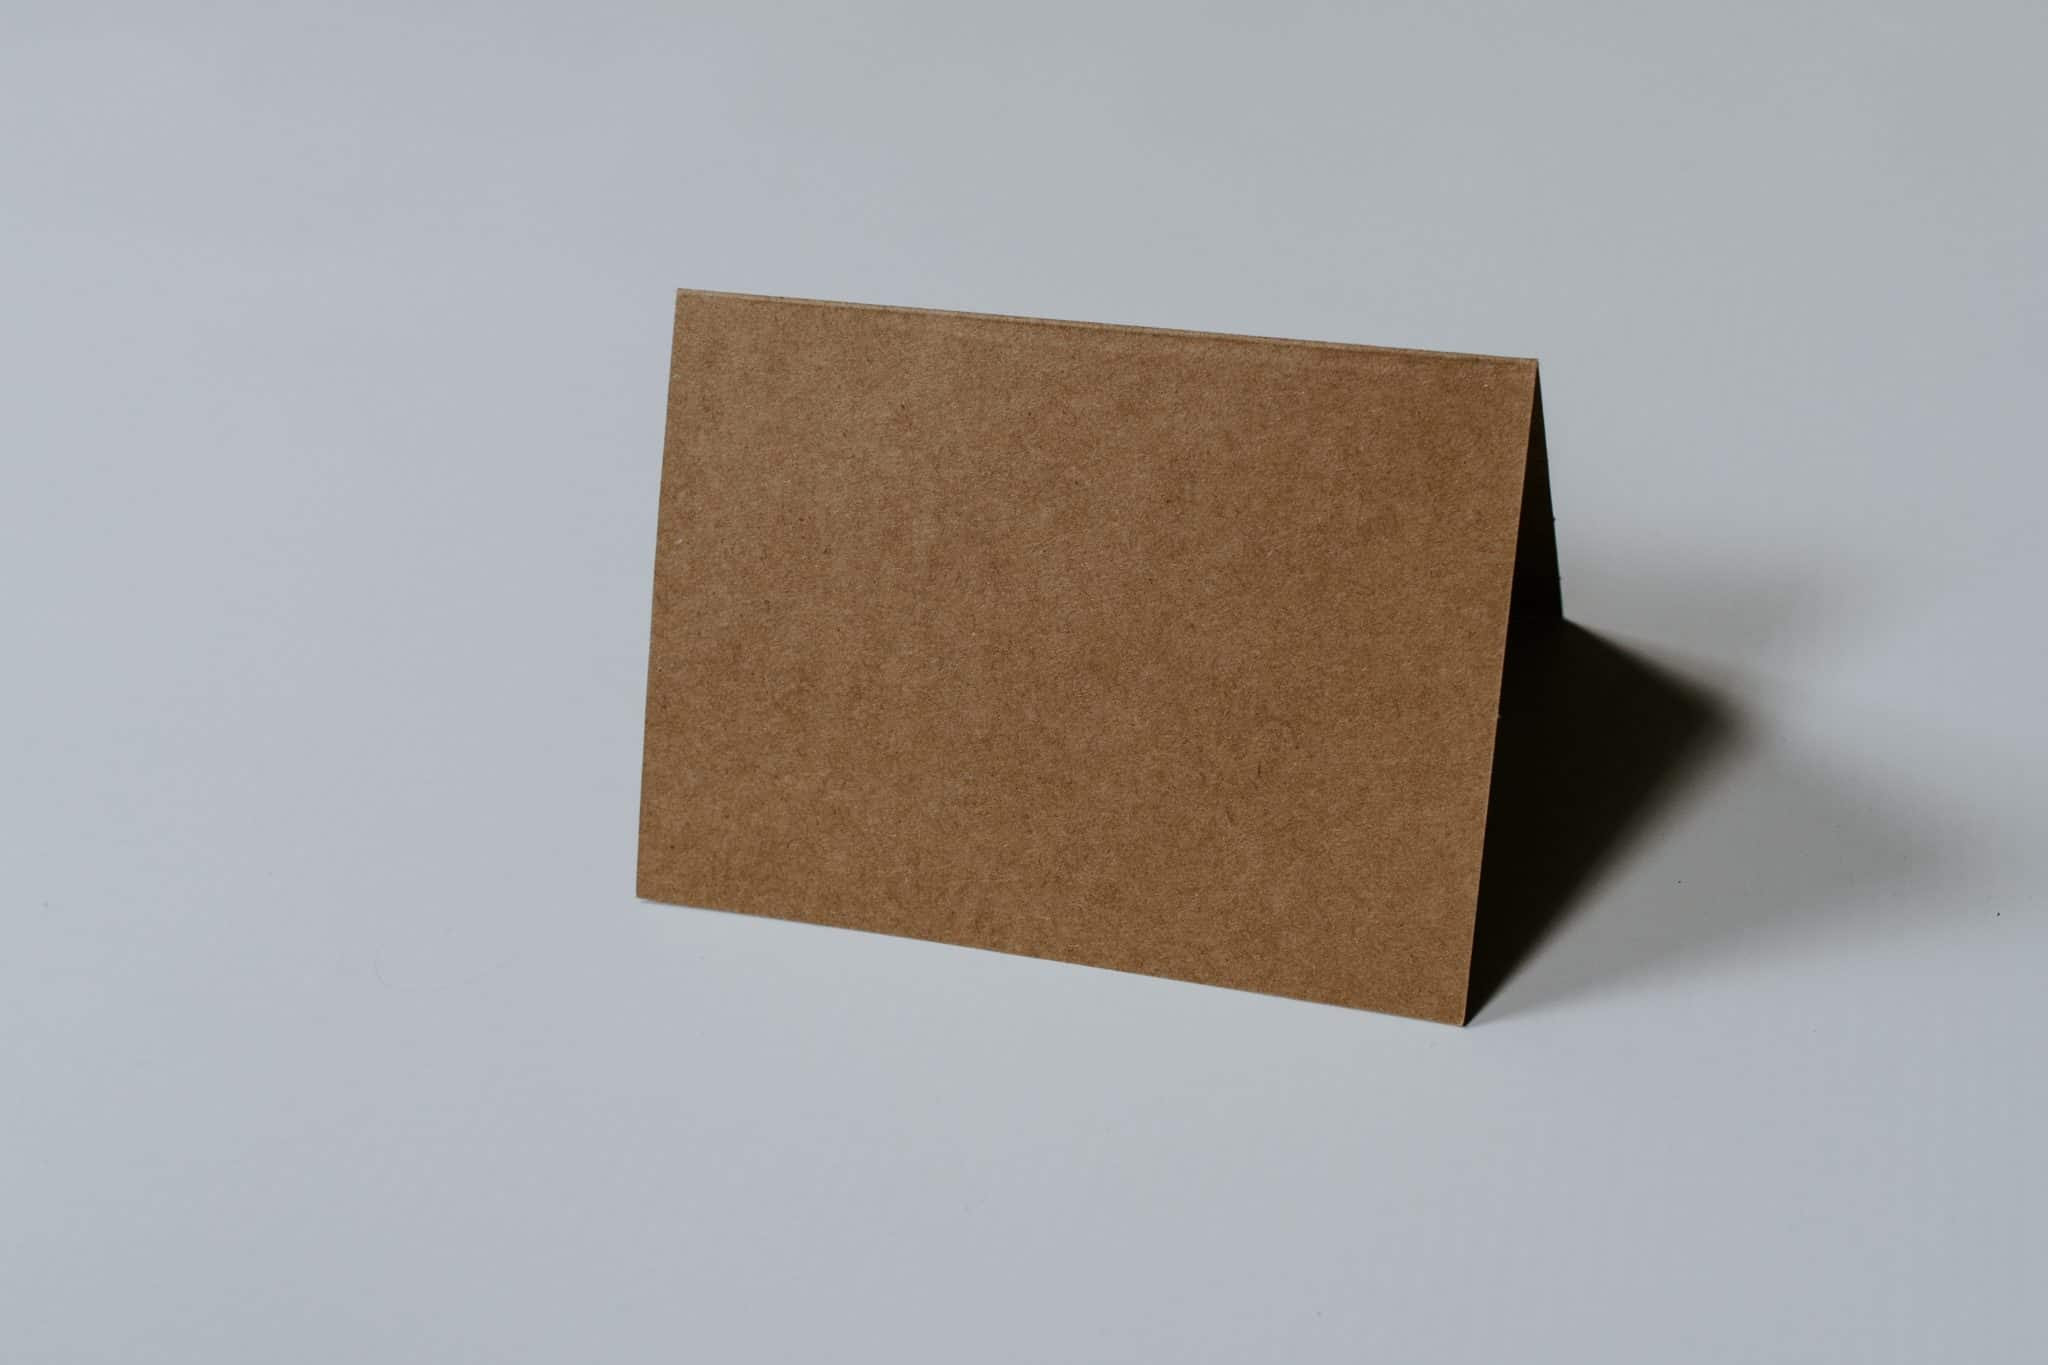 Blanks Cards Template - How will you use a blank card?